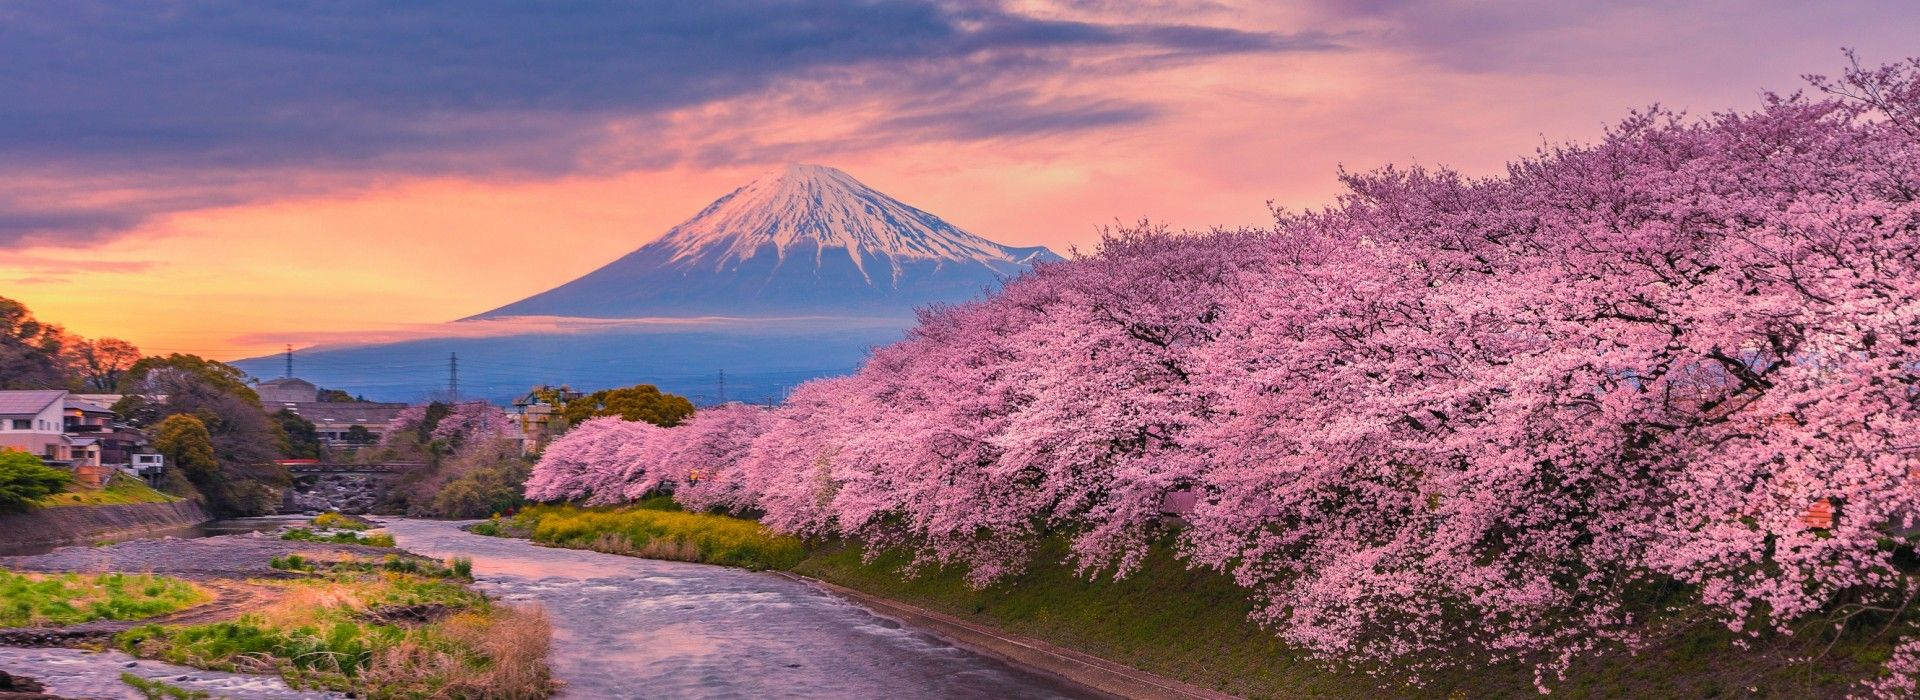 Special interests and hobbies Tours in Japan